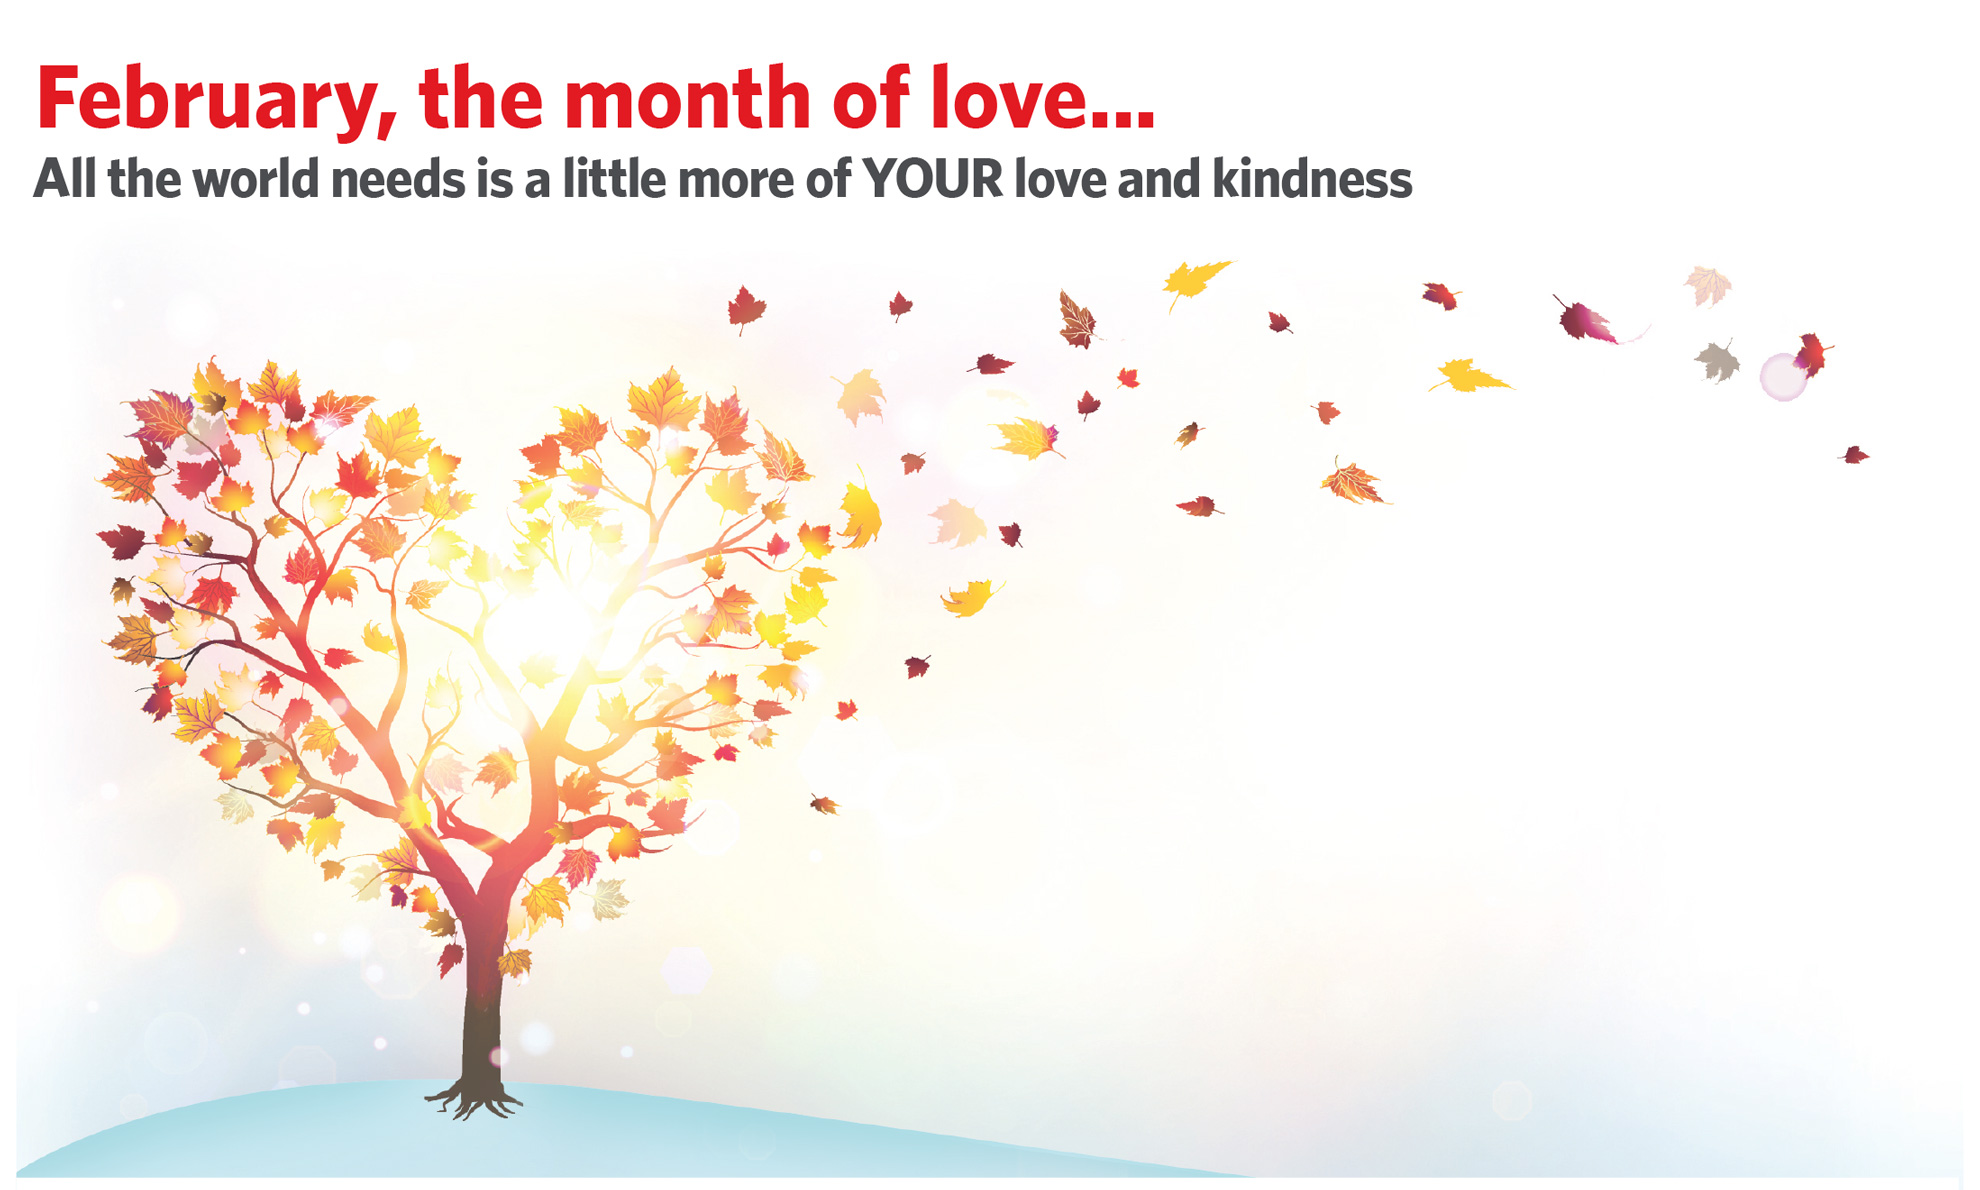 February the month of LOVE